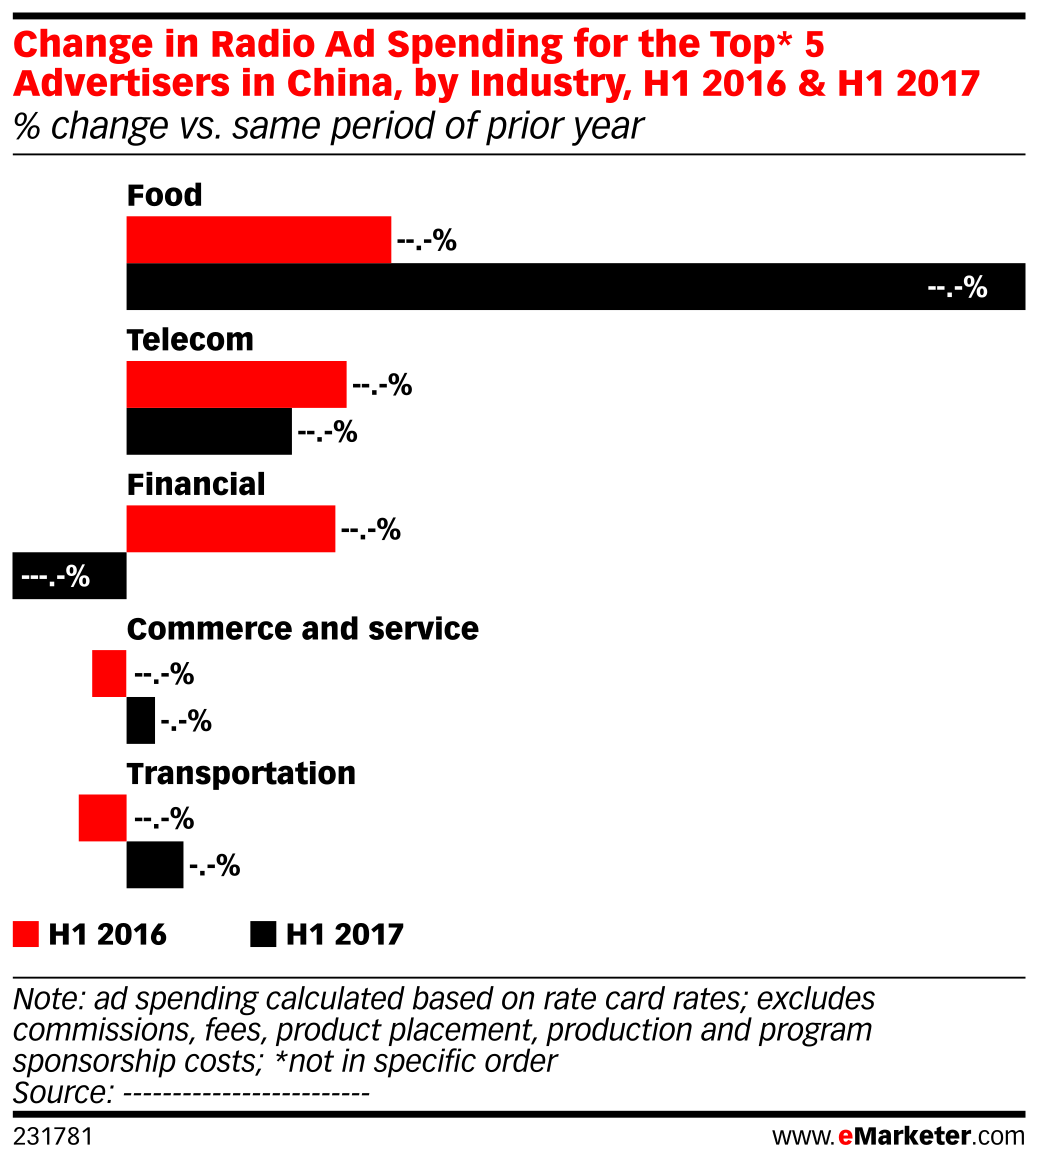 Change in Radio Ad Spending for the Top* 5 Advertisers in China, by Industry, H1 2016 & H1 2017 (% change vs. same period of prior year)